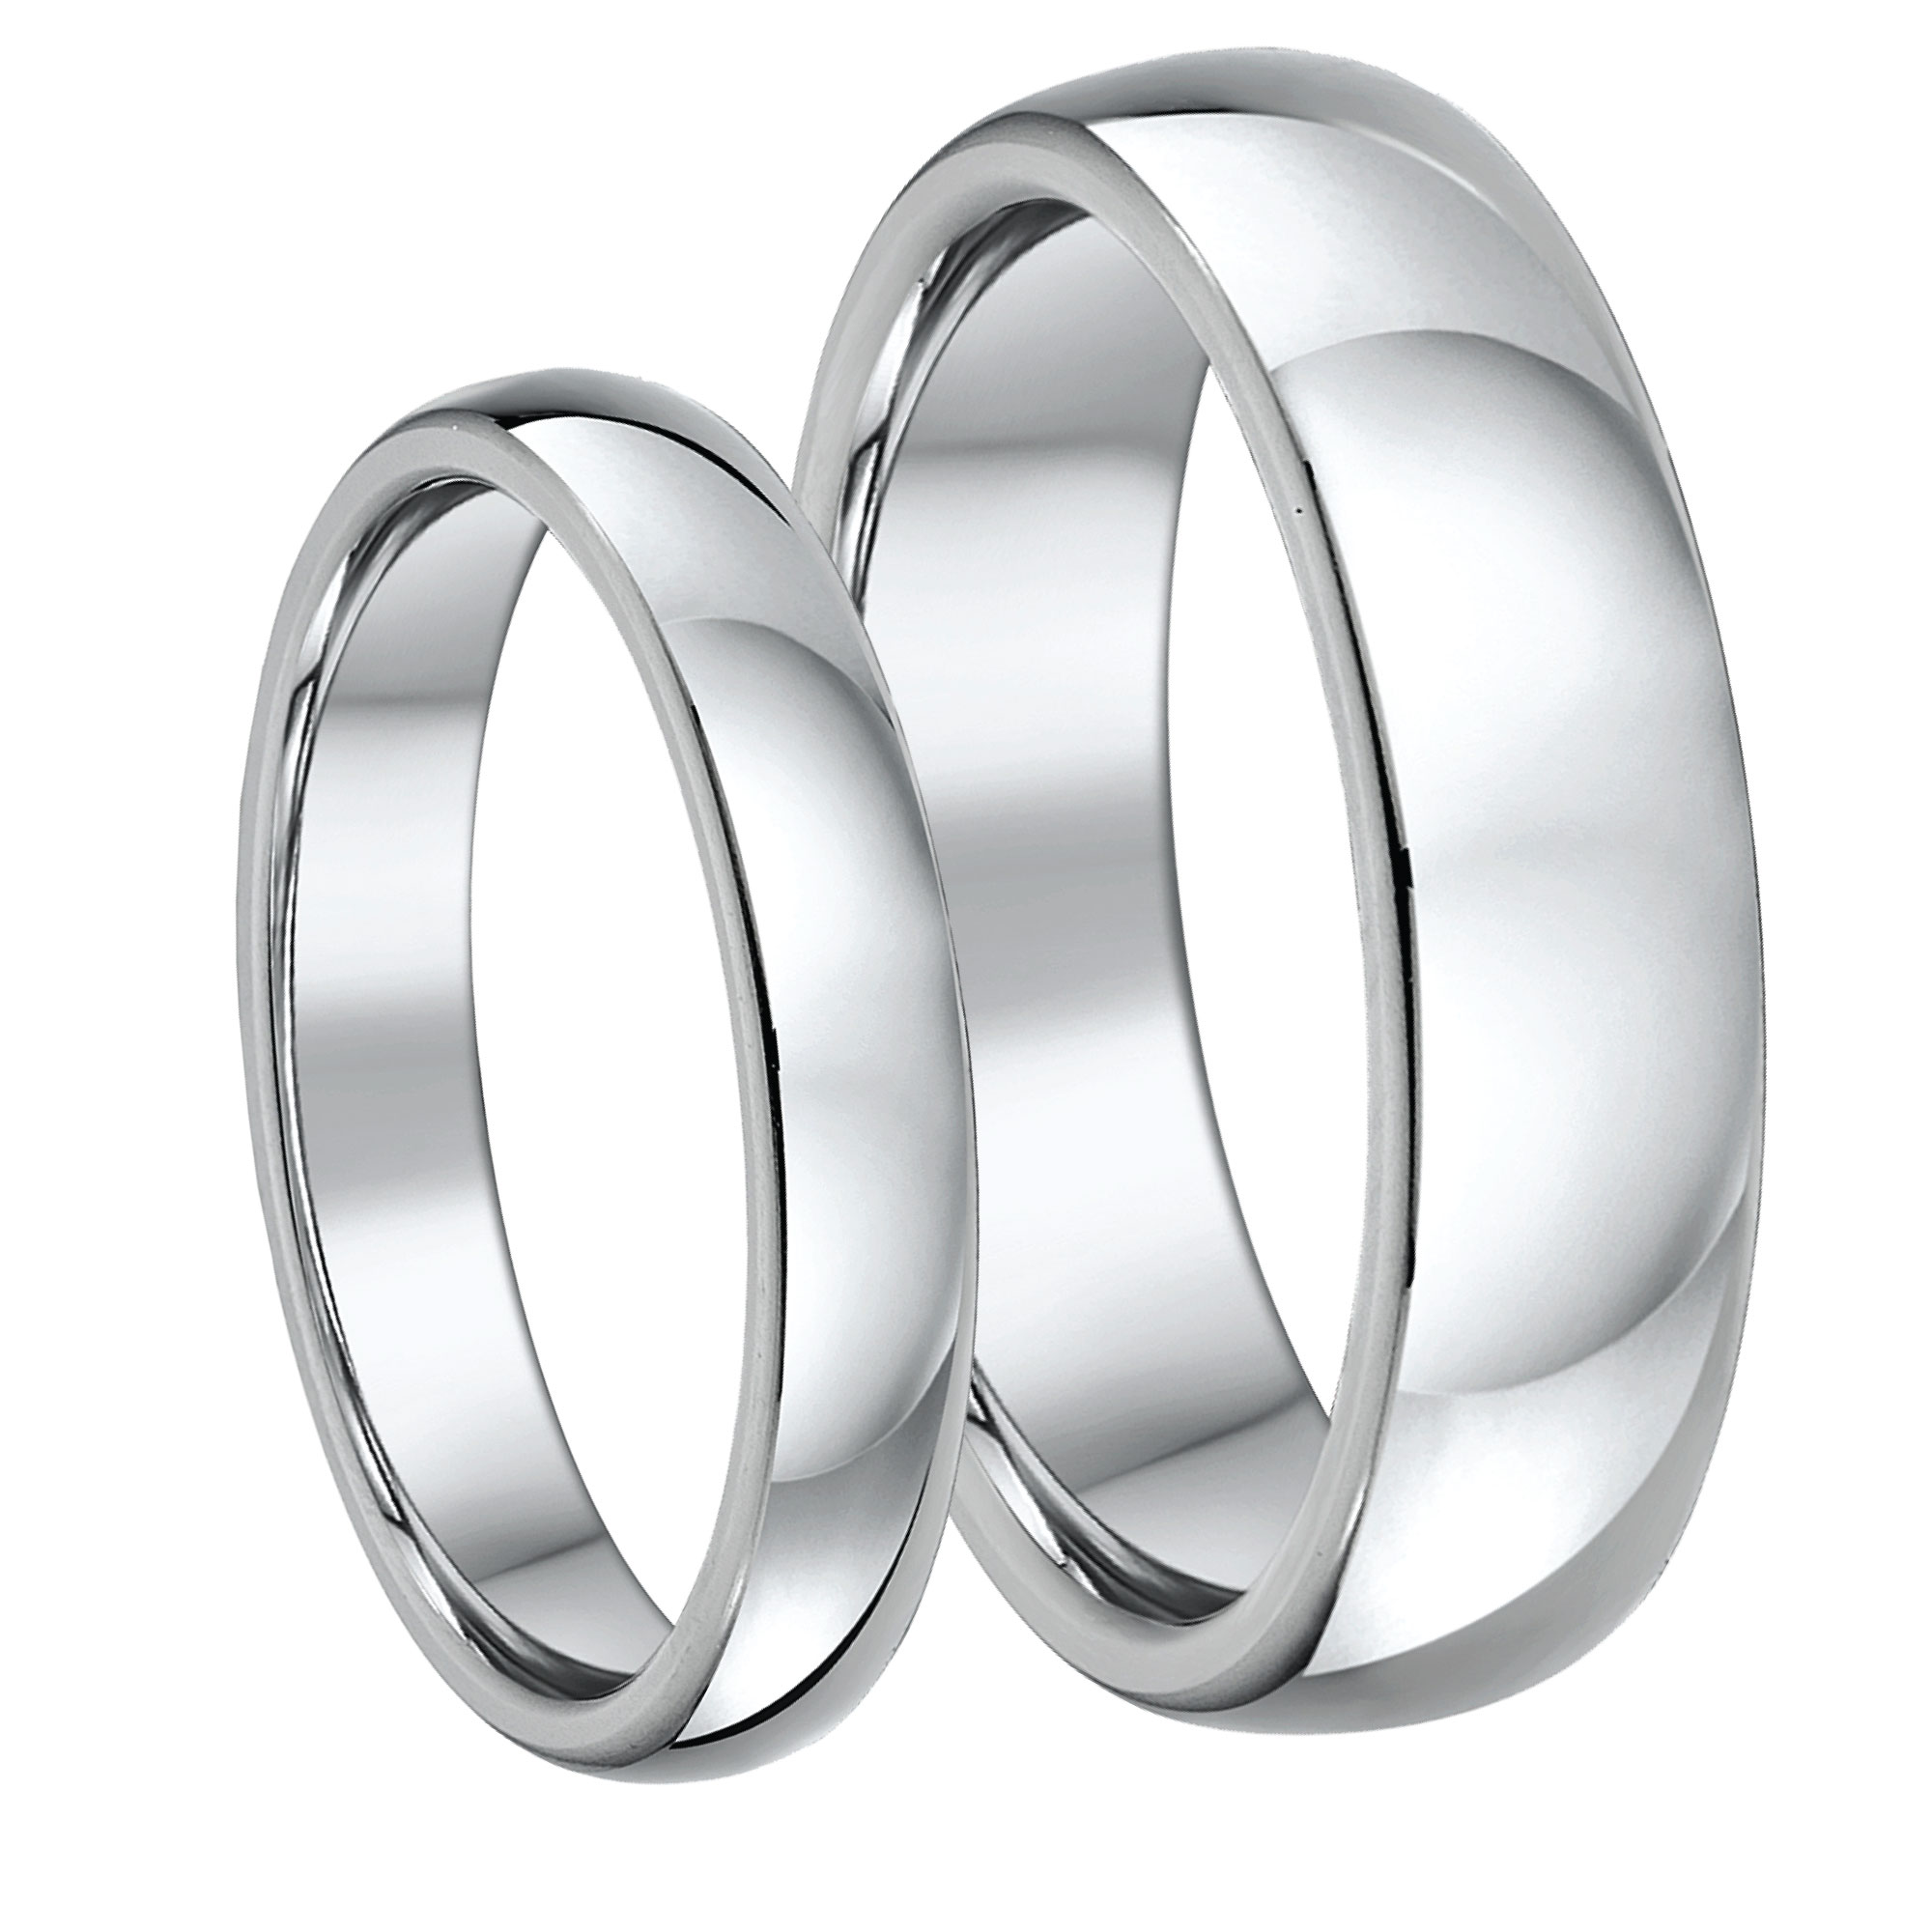 wedding mate band rings products platinum wholesale beveled polished titanium